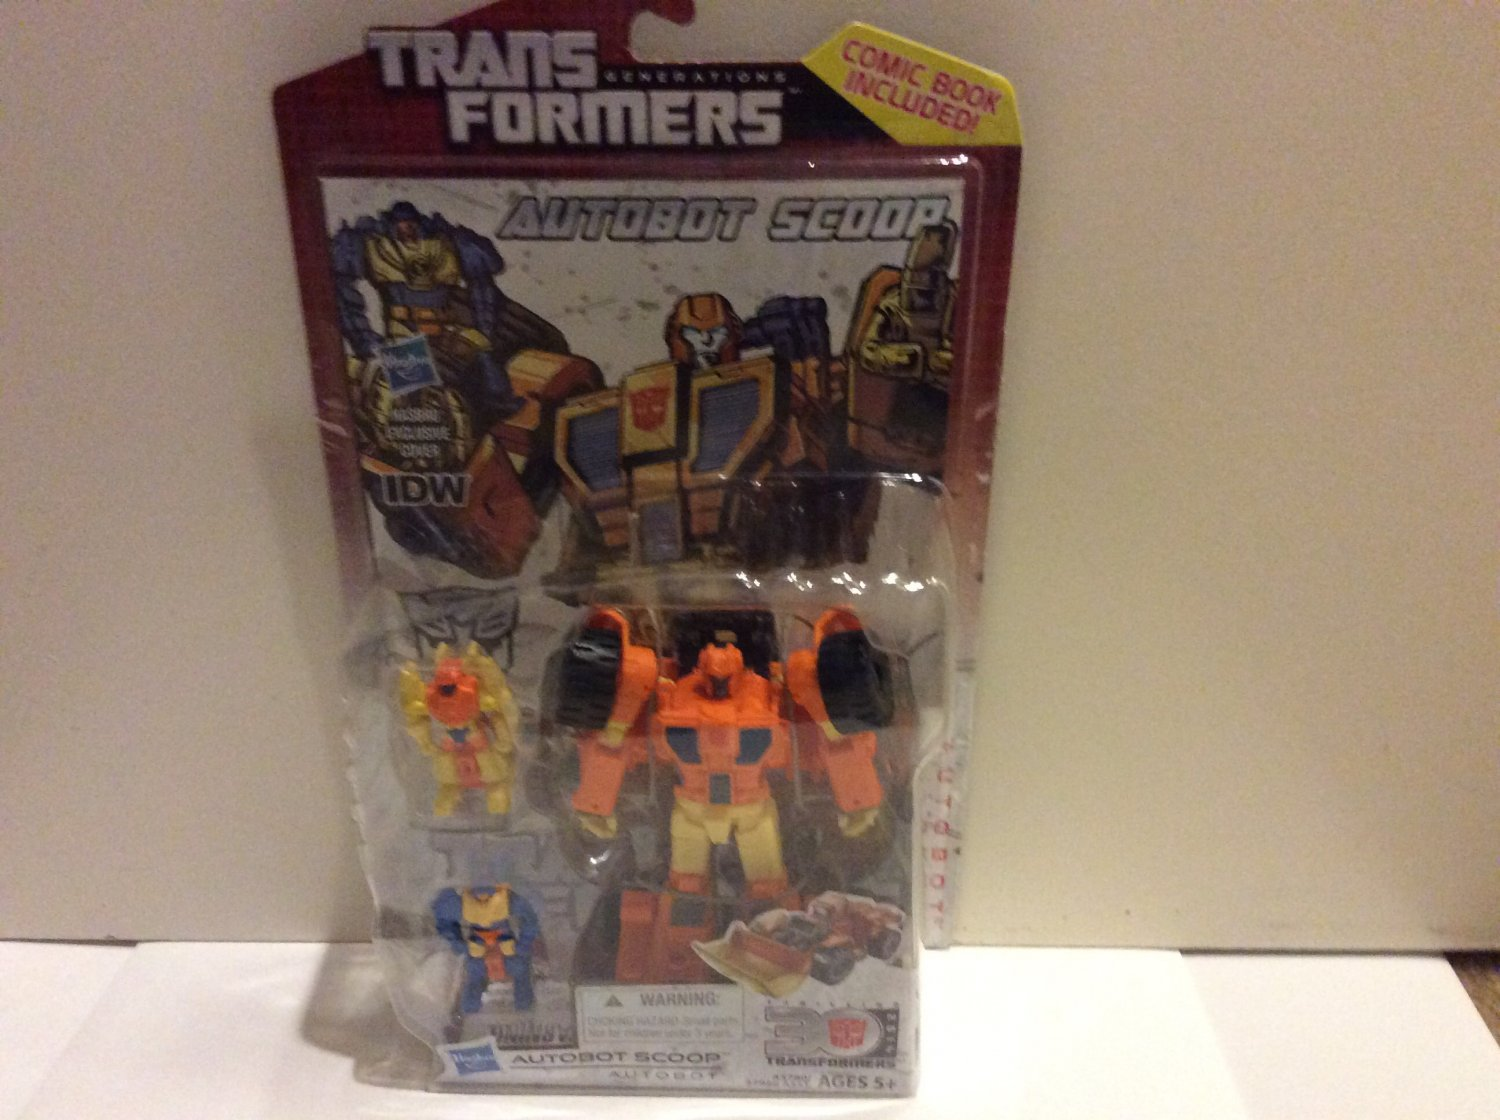 Hasbro Transformers Autobot Scoop (comic book include) Brand New